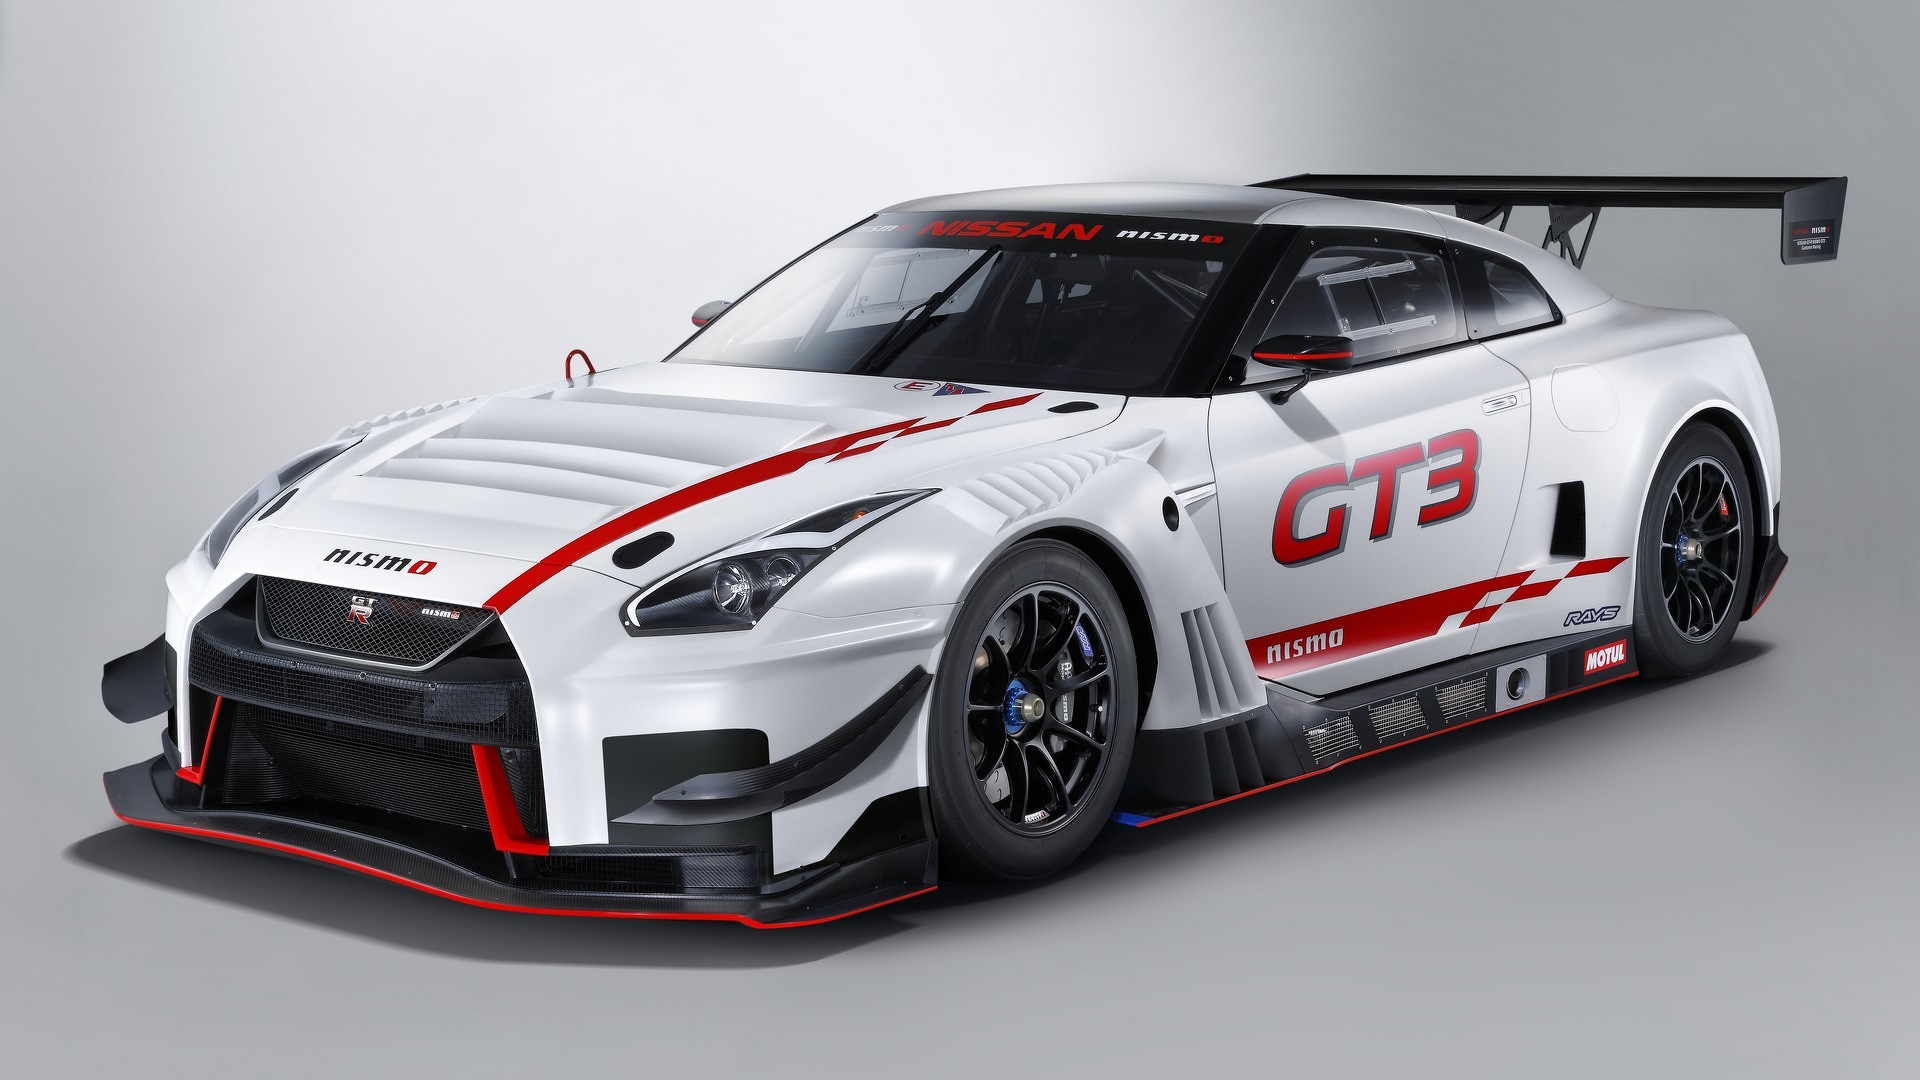 High hopes set on 2018 Nissan GT-R Nismo GT3's racing performance